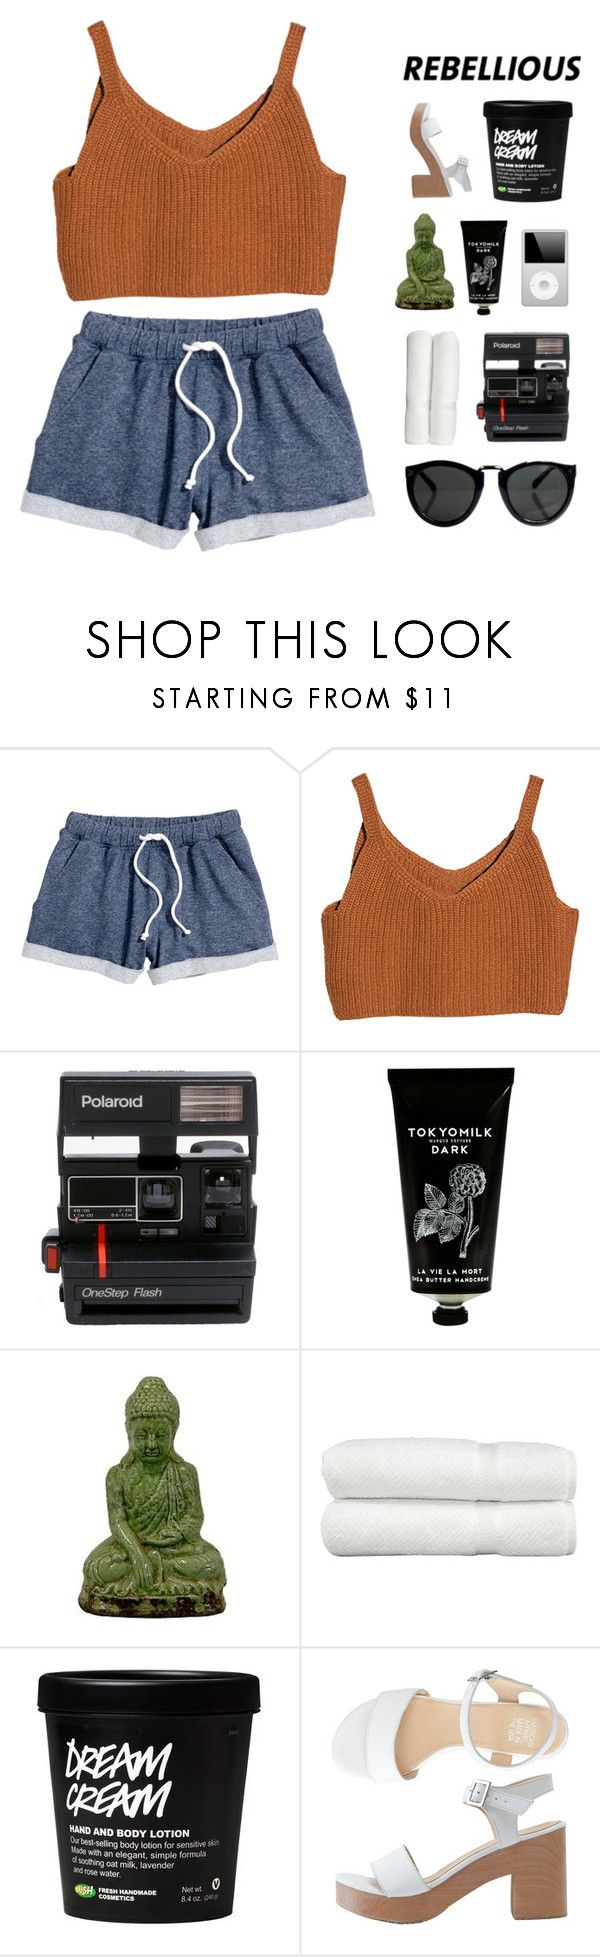 """""""question tag! ❁"""" by douxmaiden ❤ liked on Polyvore featuring H&M, Polaroid, TokyoMilk, Urban Trends Collection, Linum Home Textiles, American Apparel, bathroom and country"""